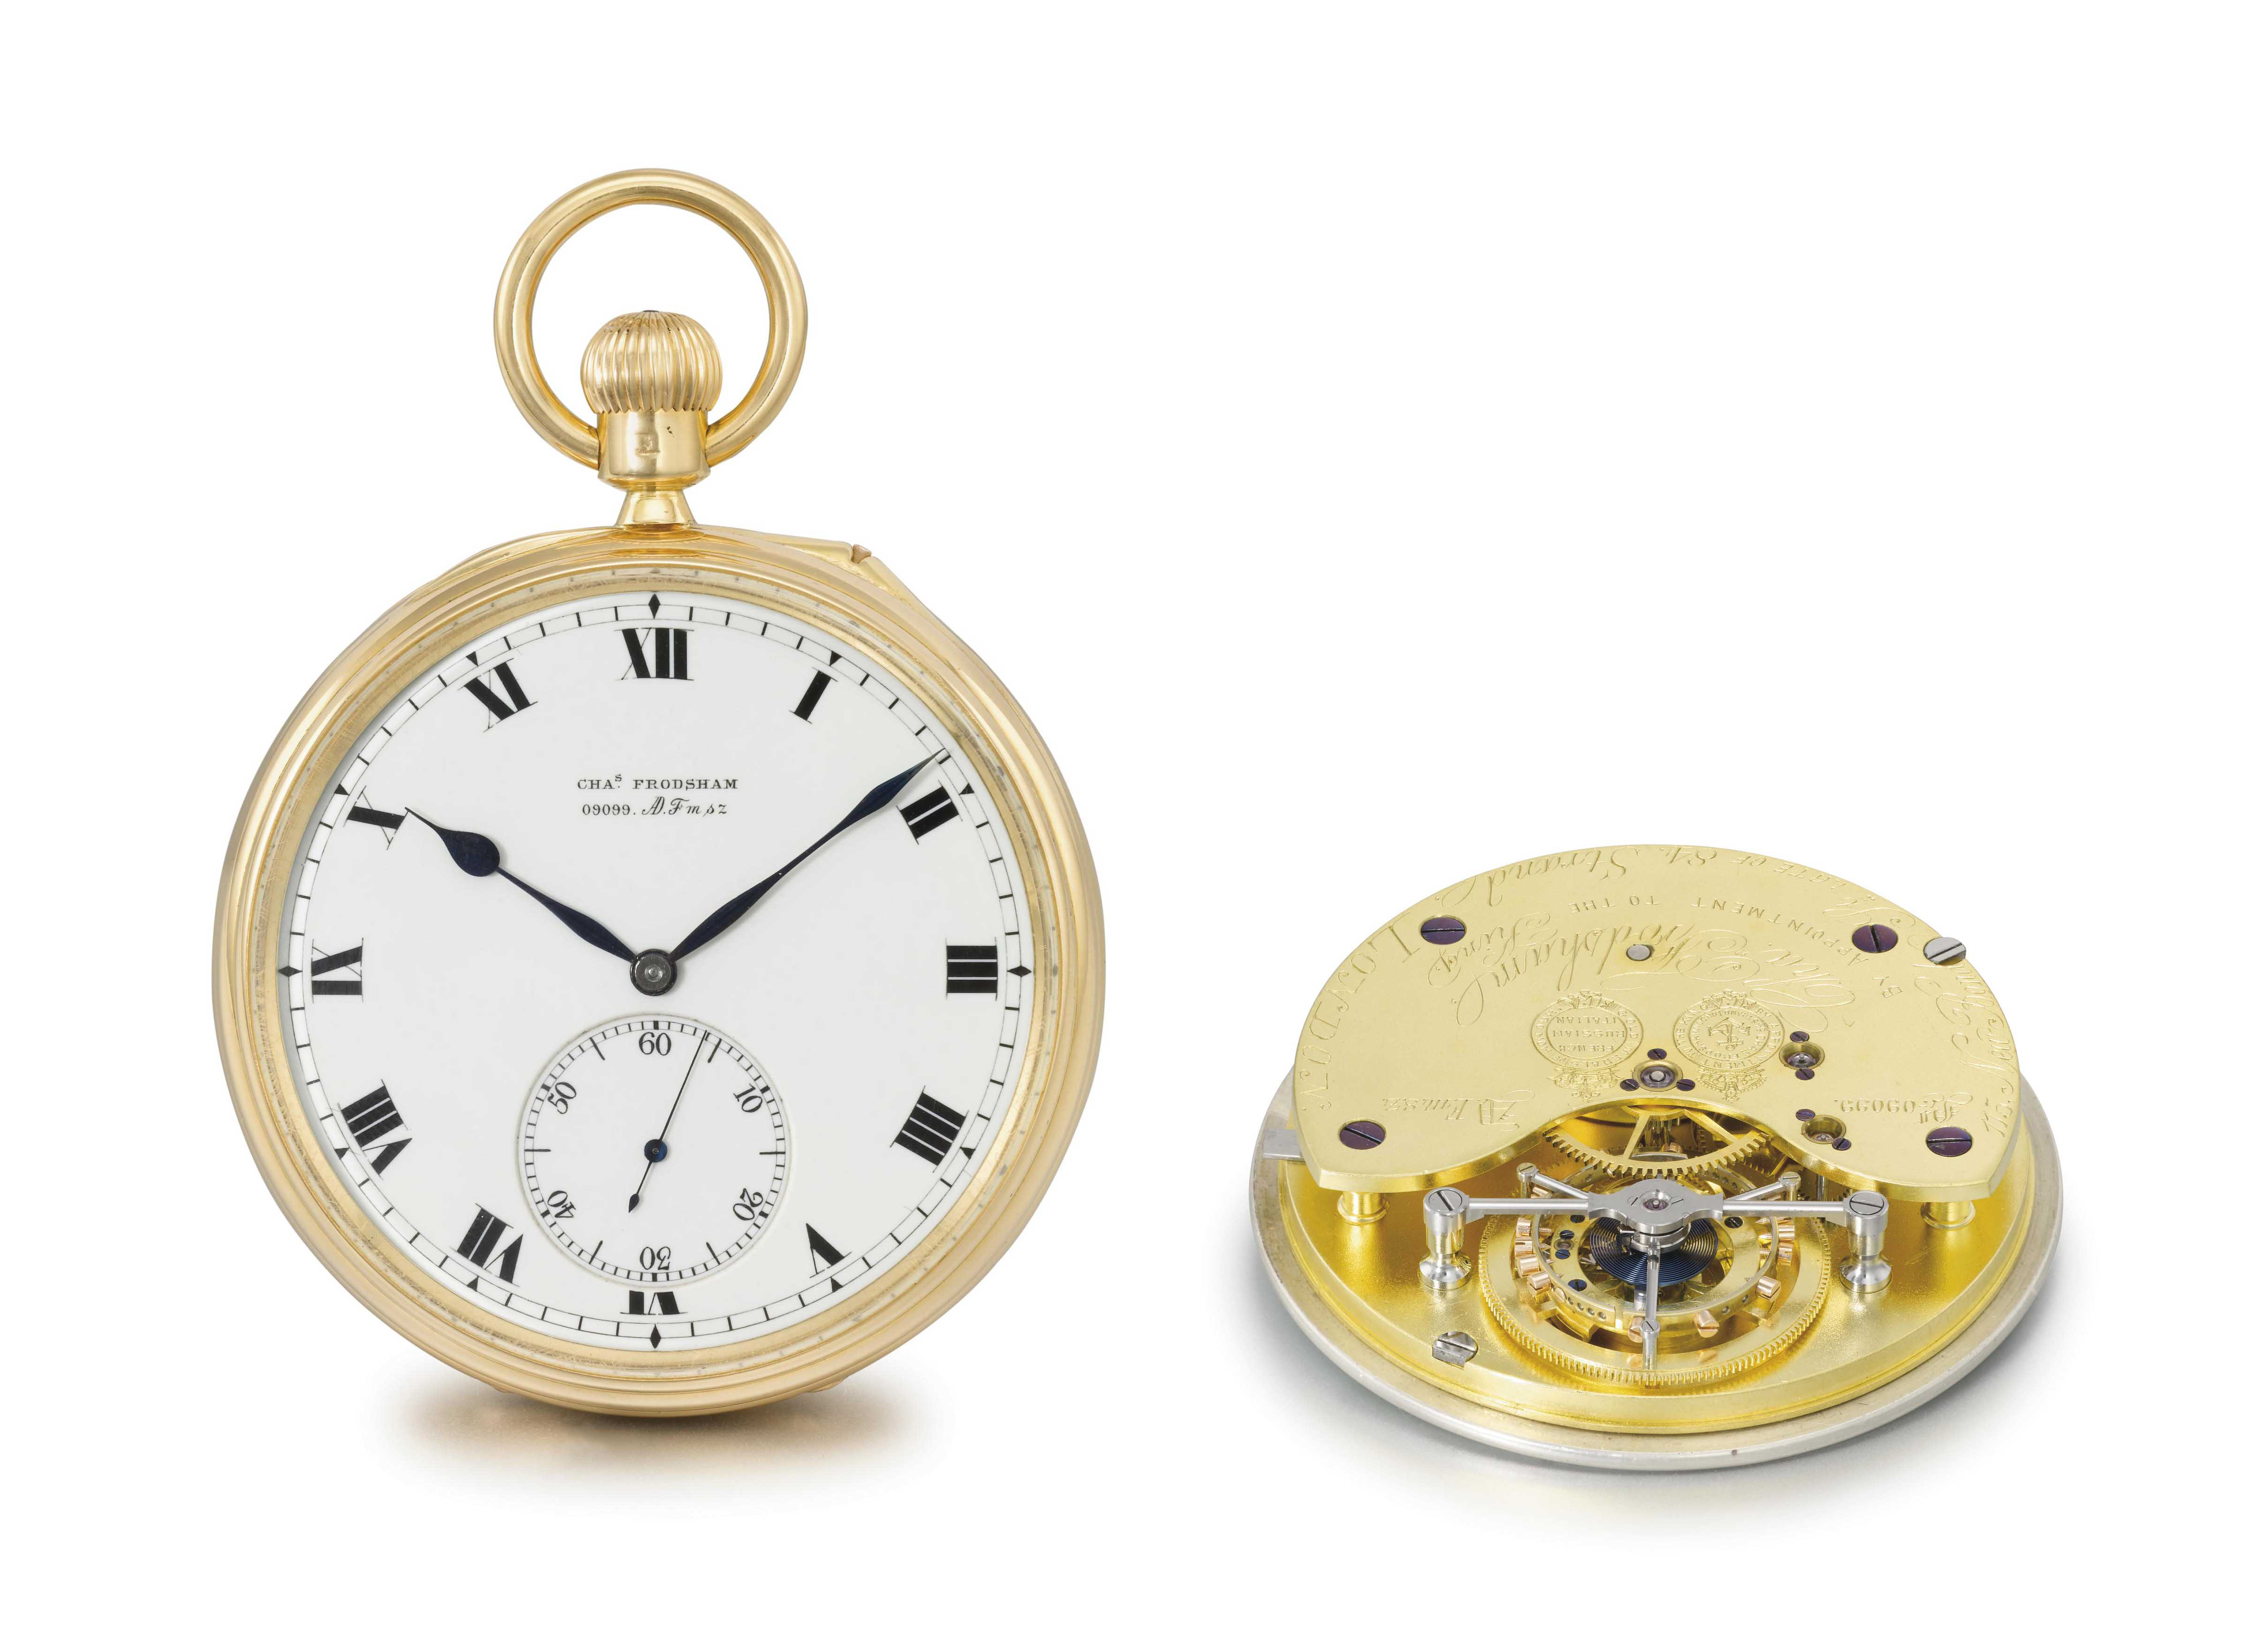 Charles Frodsham. A very fine and rare 18K gold openface six minute tourbillon keyless lever watch with Kew Observatory Certificate